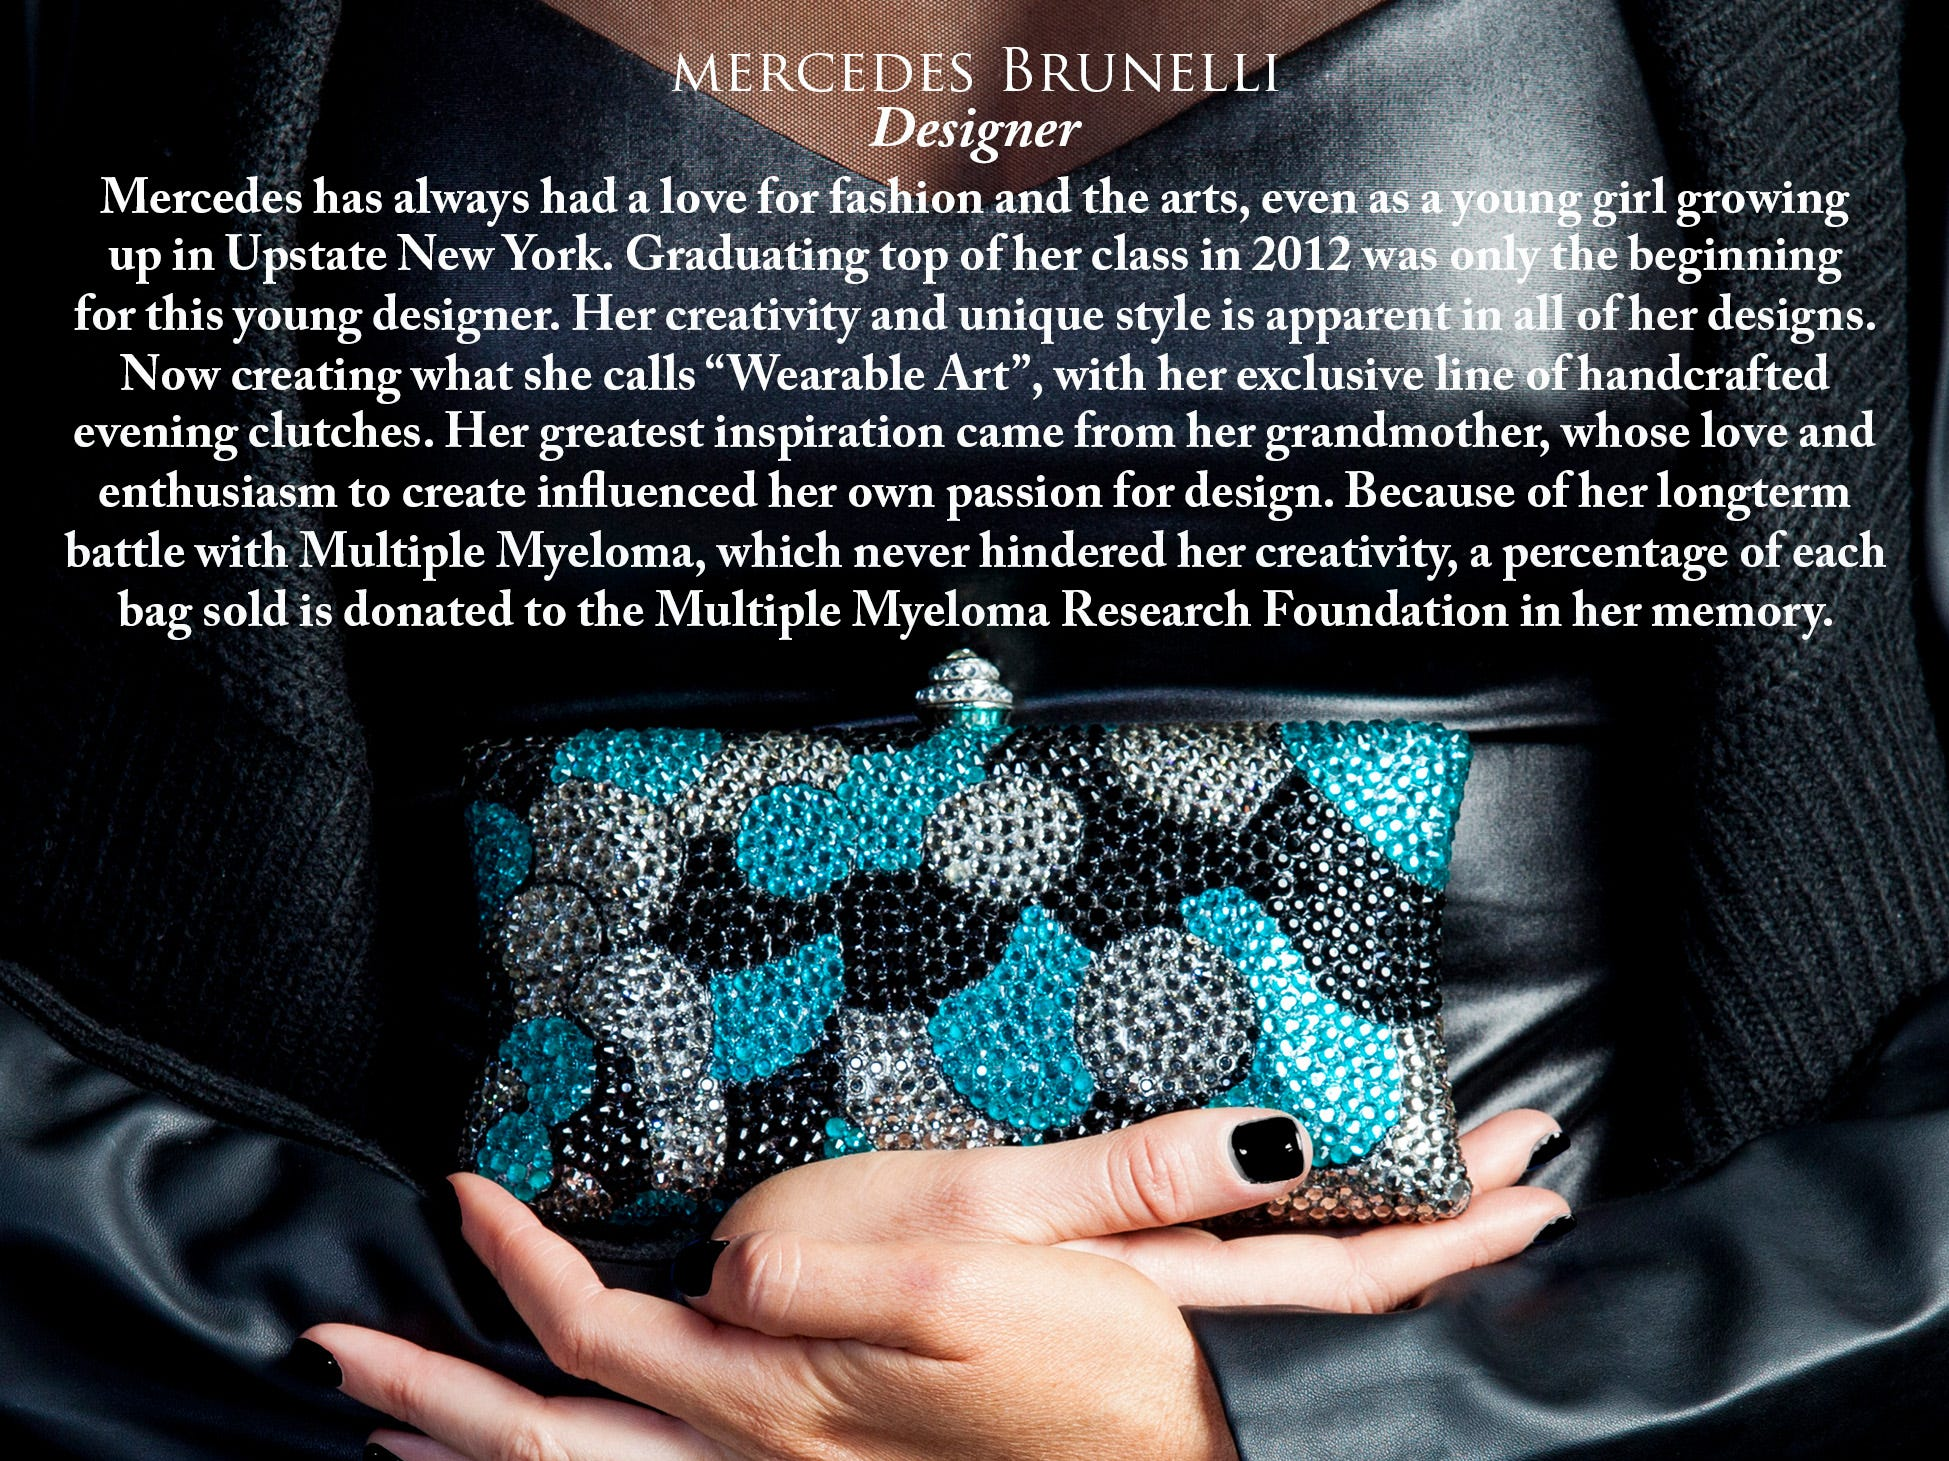 Mercedes Brunelli was invited to bring her pieces to the Emmy Awards.